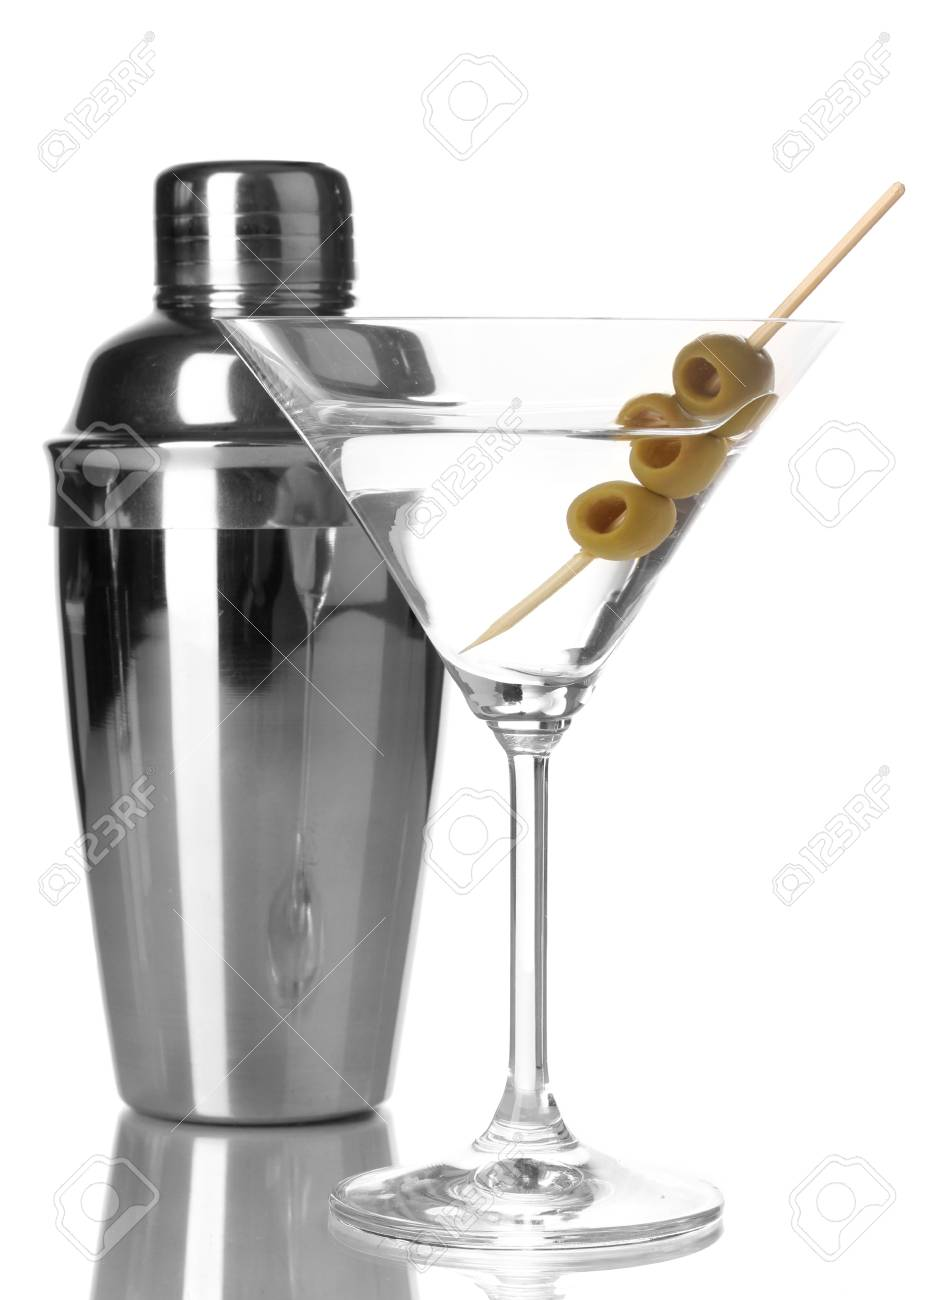 Martini glass with olives and shaker isolated on white Stock Photo - 15457244